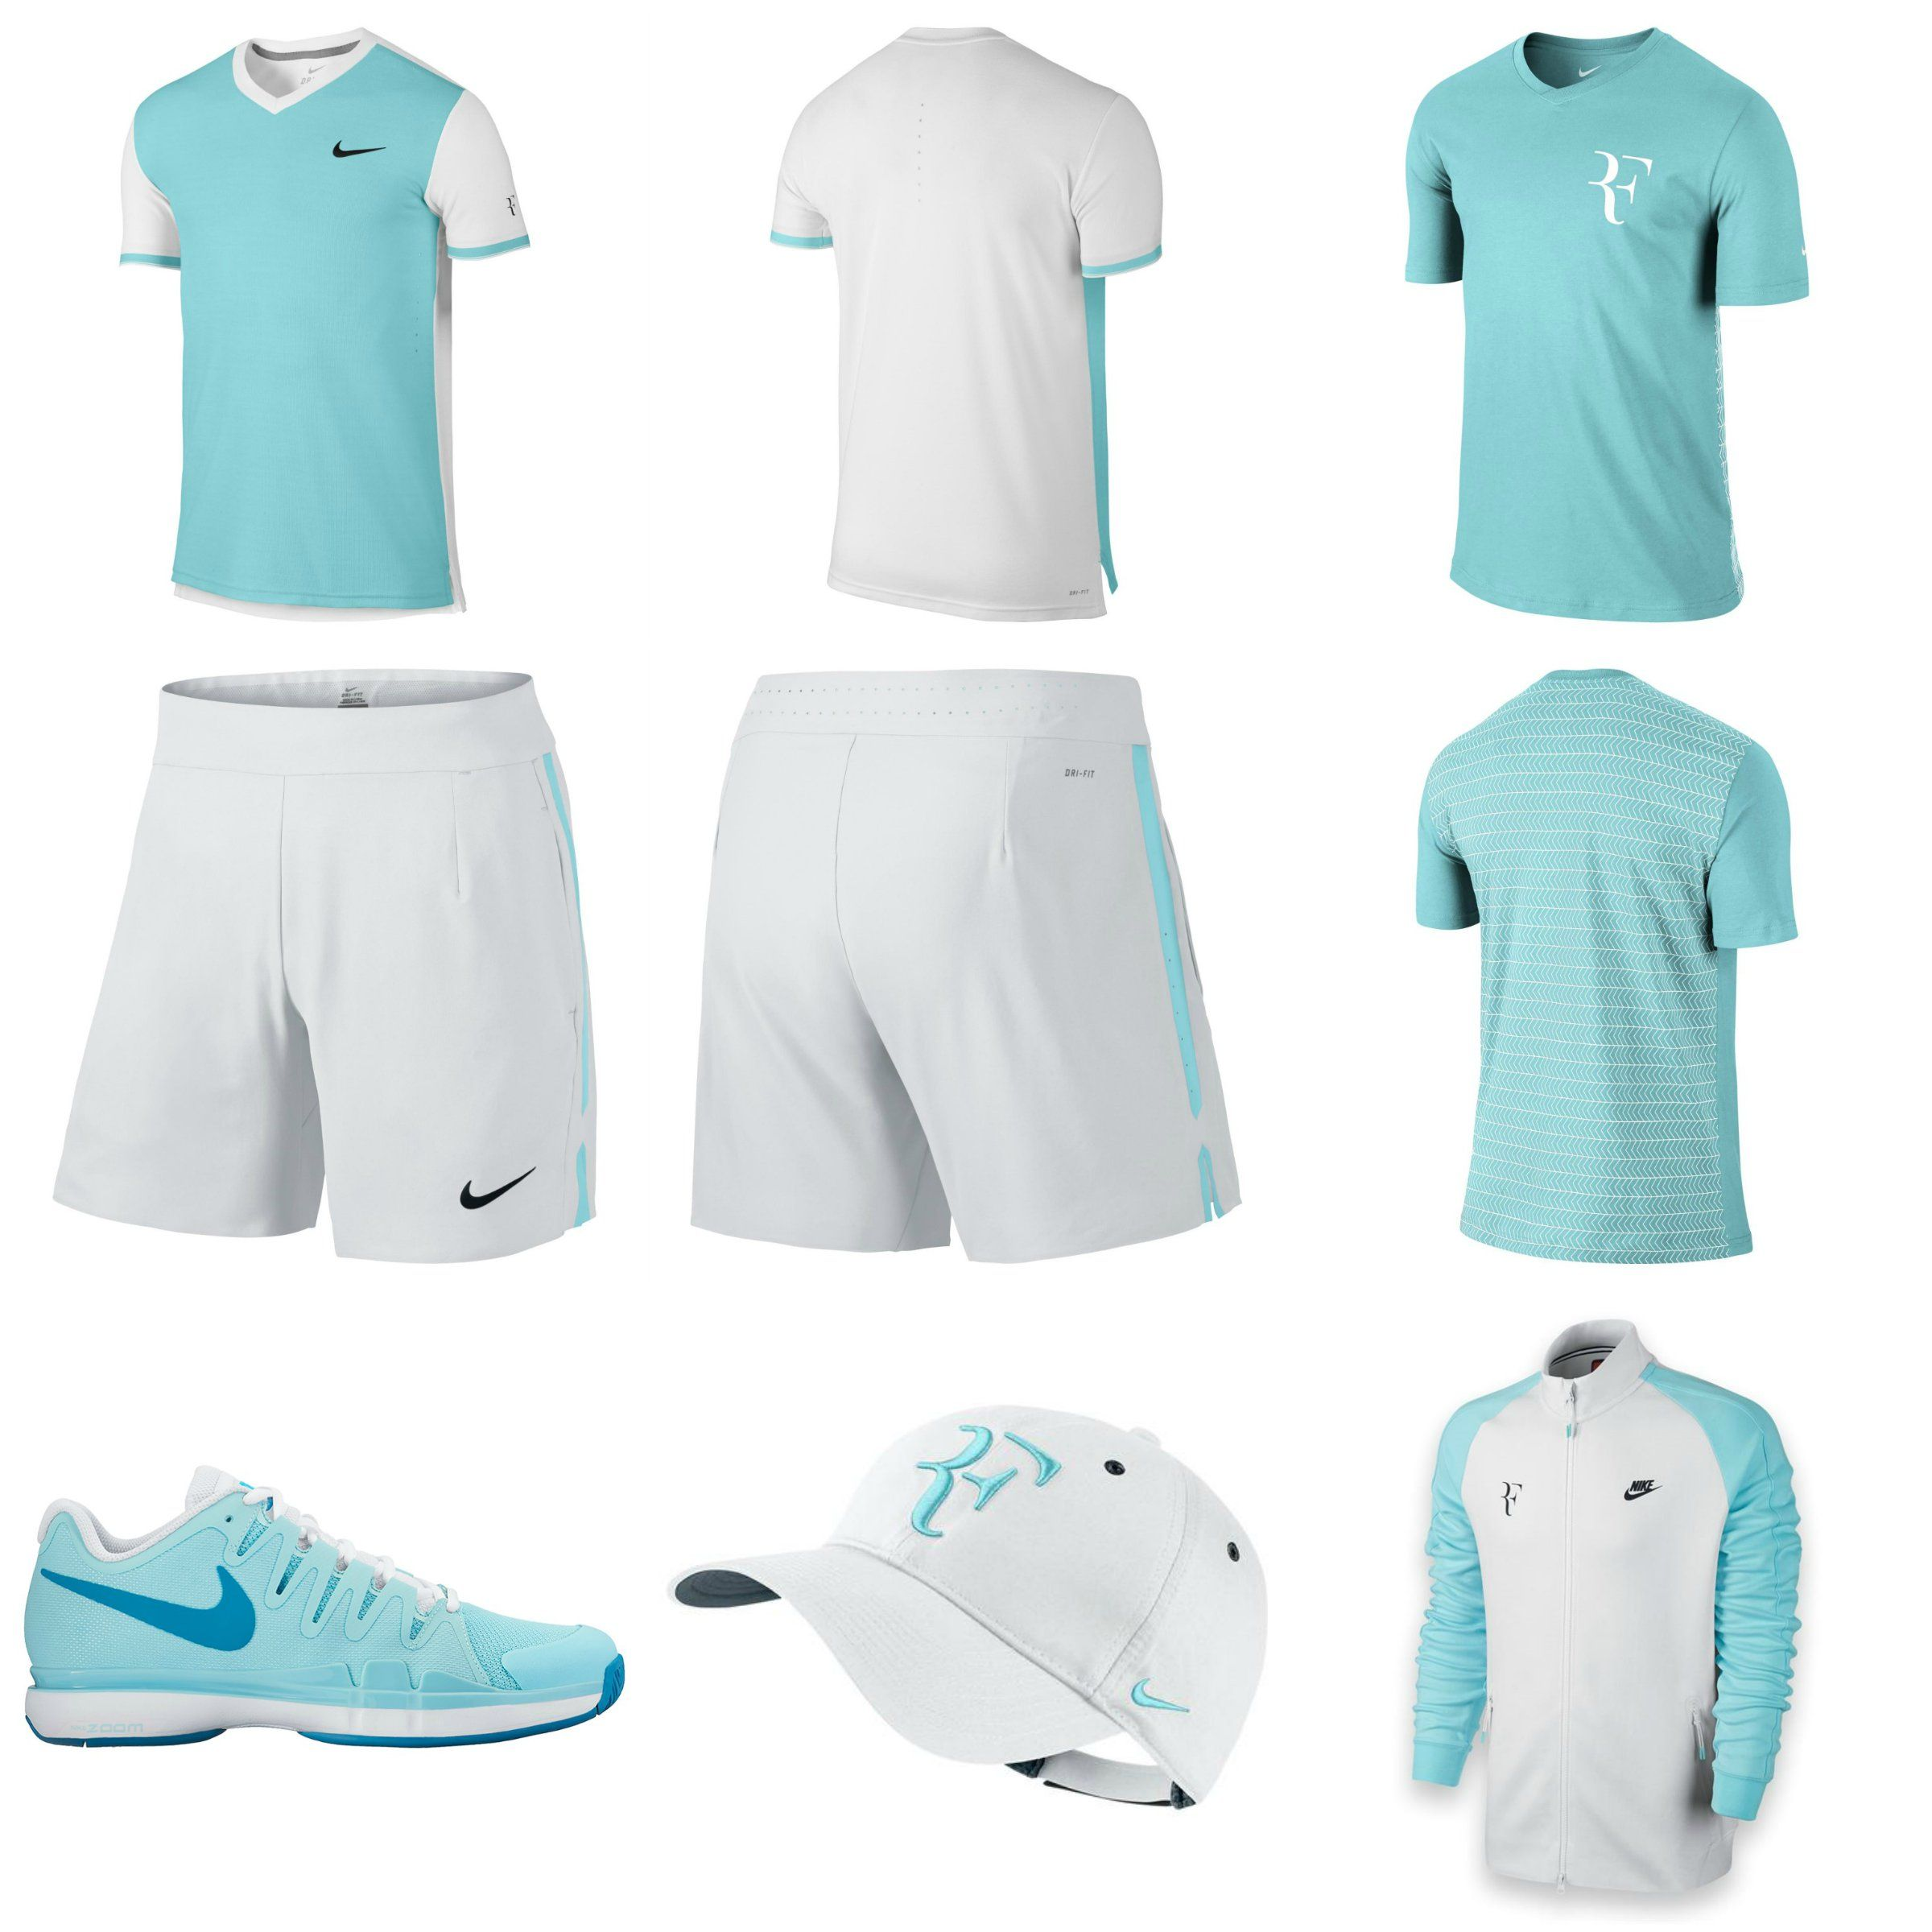 34a06205 Roger Federer's Outfit for Shanghai and Basel 2015 | Tennis Style ...